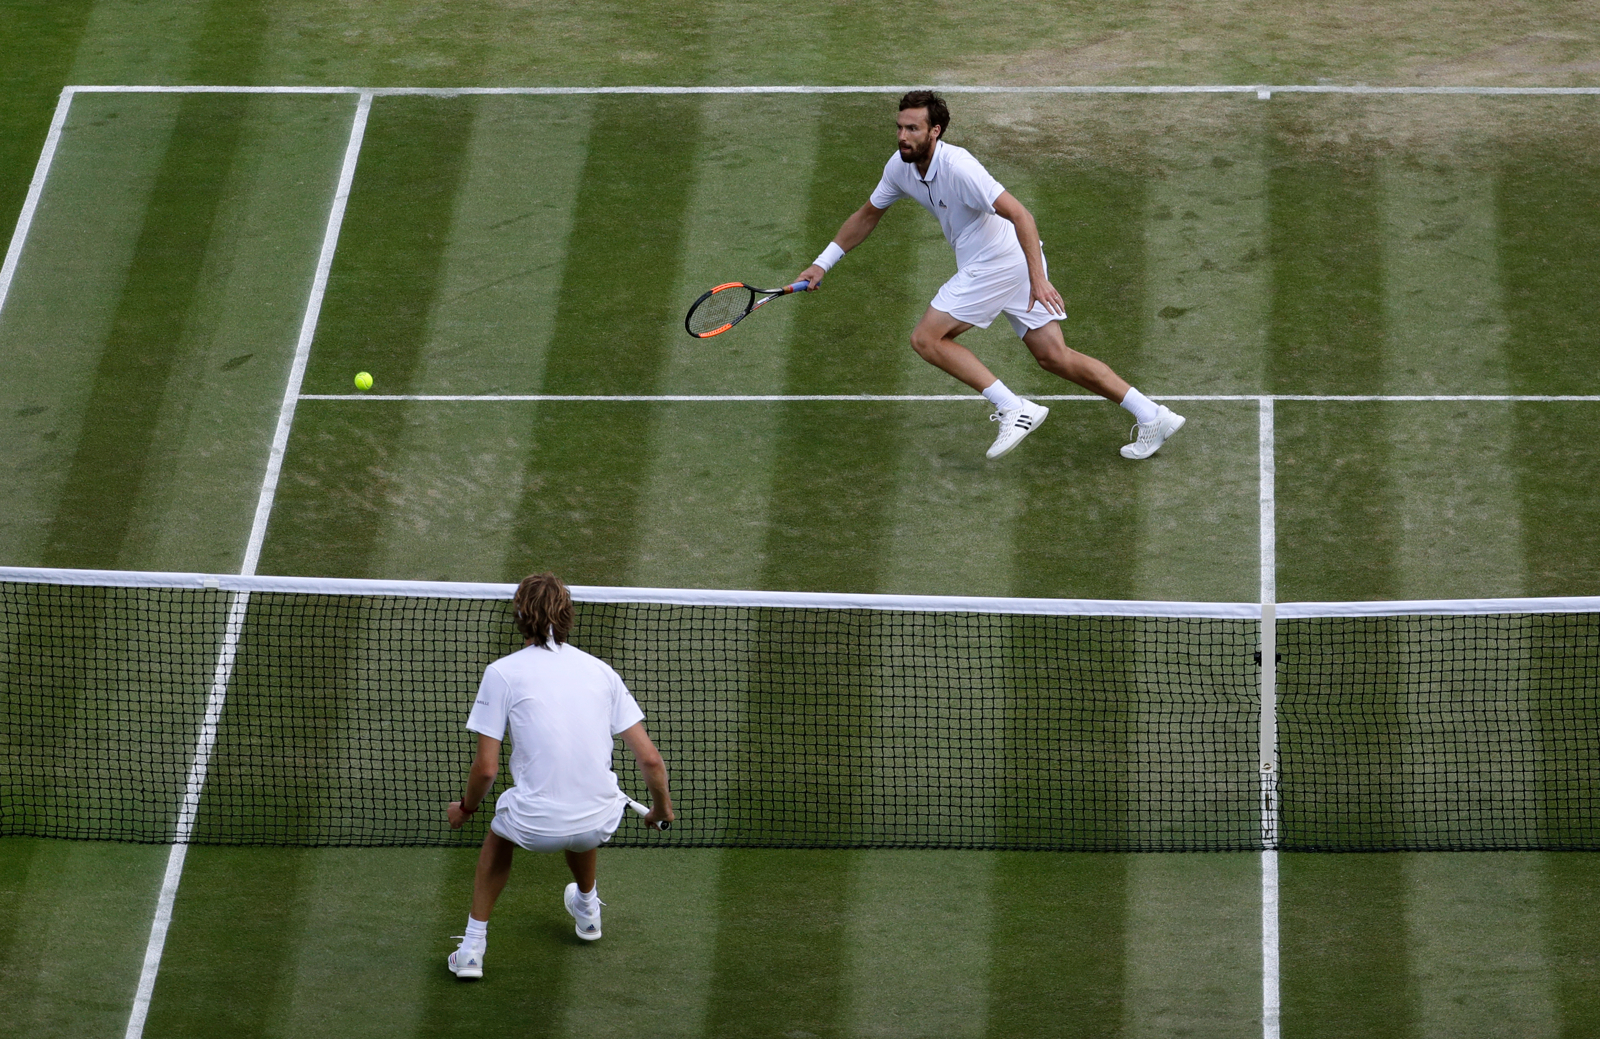 save off 2b4e2 fb3c2 Ernests Gulbis of Latvia, top, returns the ball to Alexander Zverev of  Germany during their men s singles match on the sixth day at the Wimbledon  Tennis ...